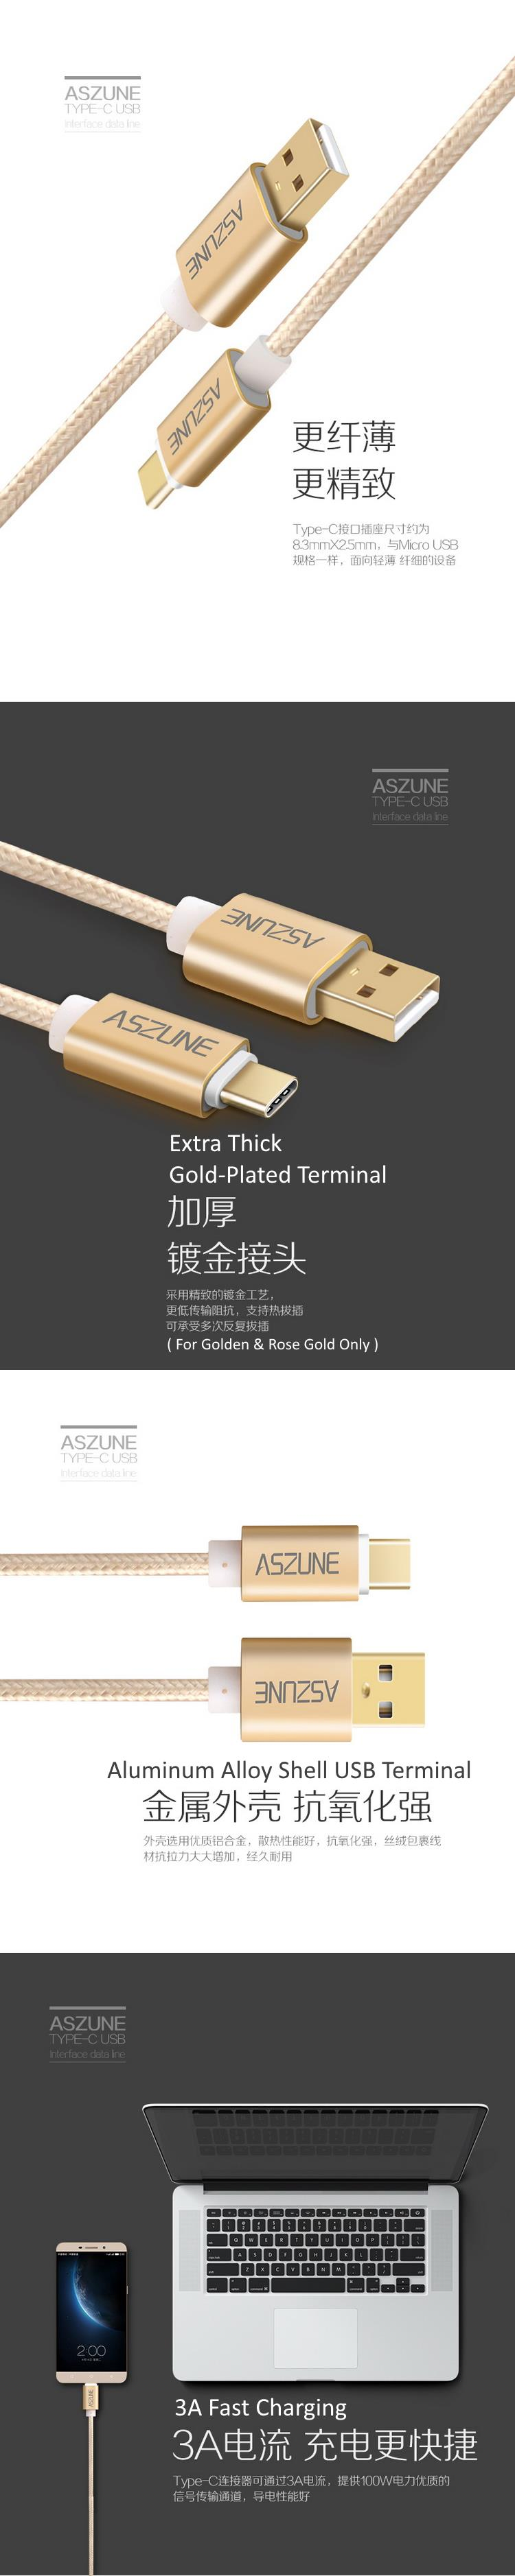 Type C, 3A Gold Plated USB Fast Charge And Data Sync Cable